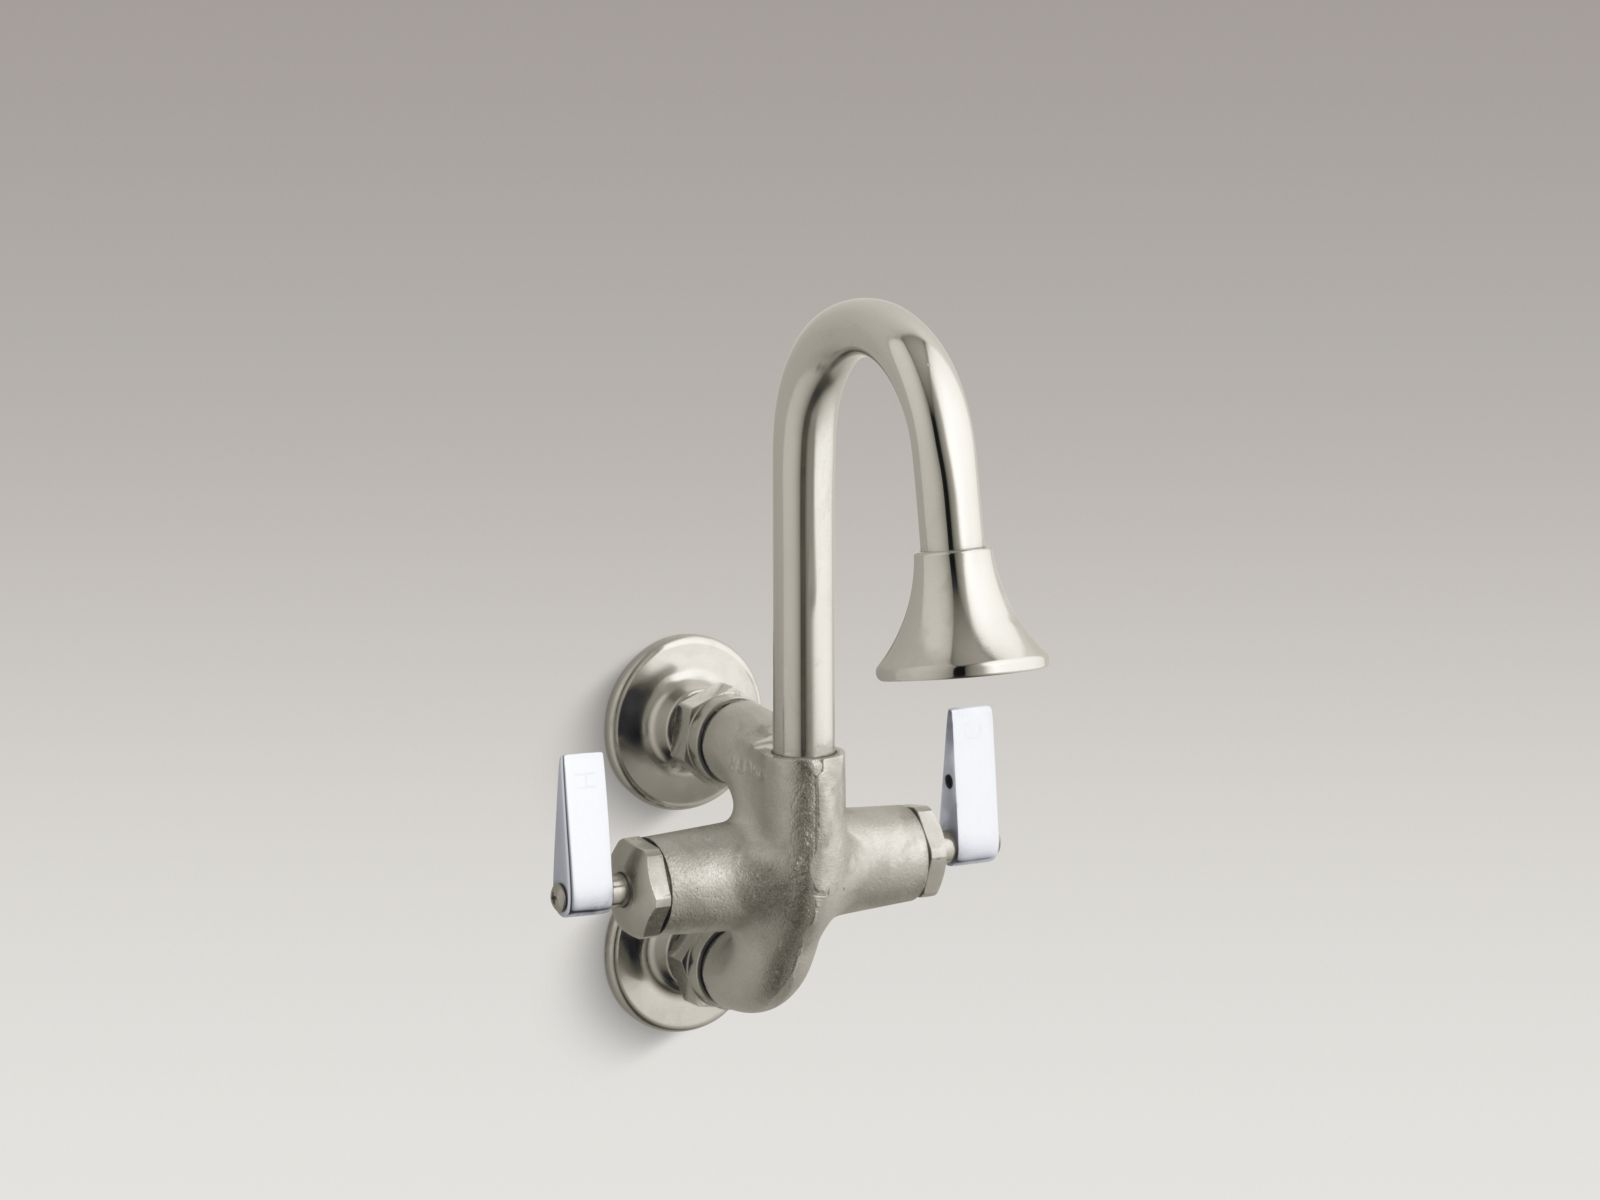 Kohler K-8892-RP Cannock Wall-mounted Two Lever-handles Wash Sink Faucet with Rosespray Spout Rough Plate